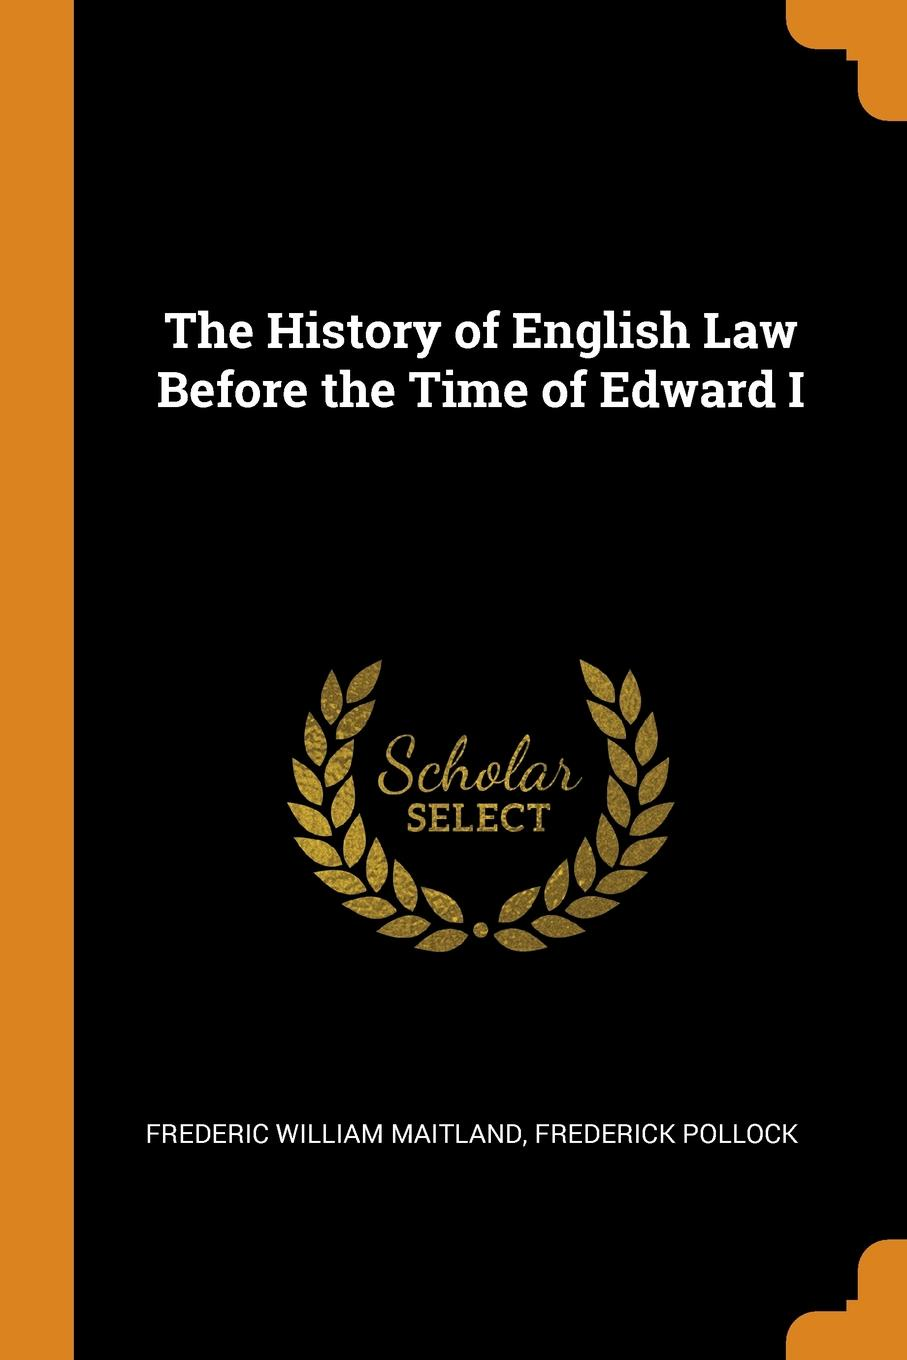 The History of English Law Before the Time of Edward I. Frederic William Maitland, Frederick Pollock